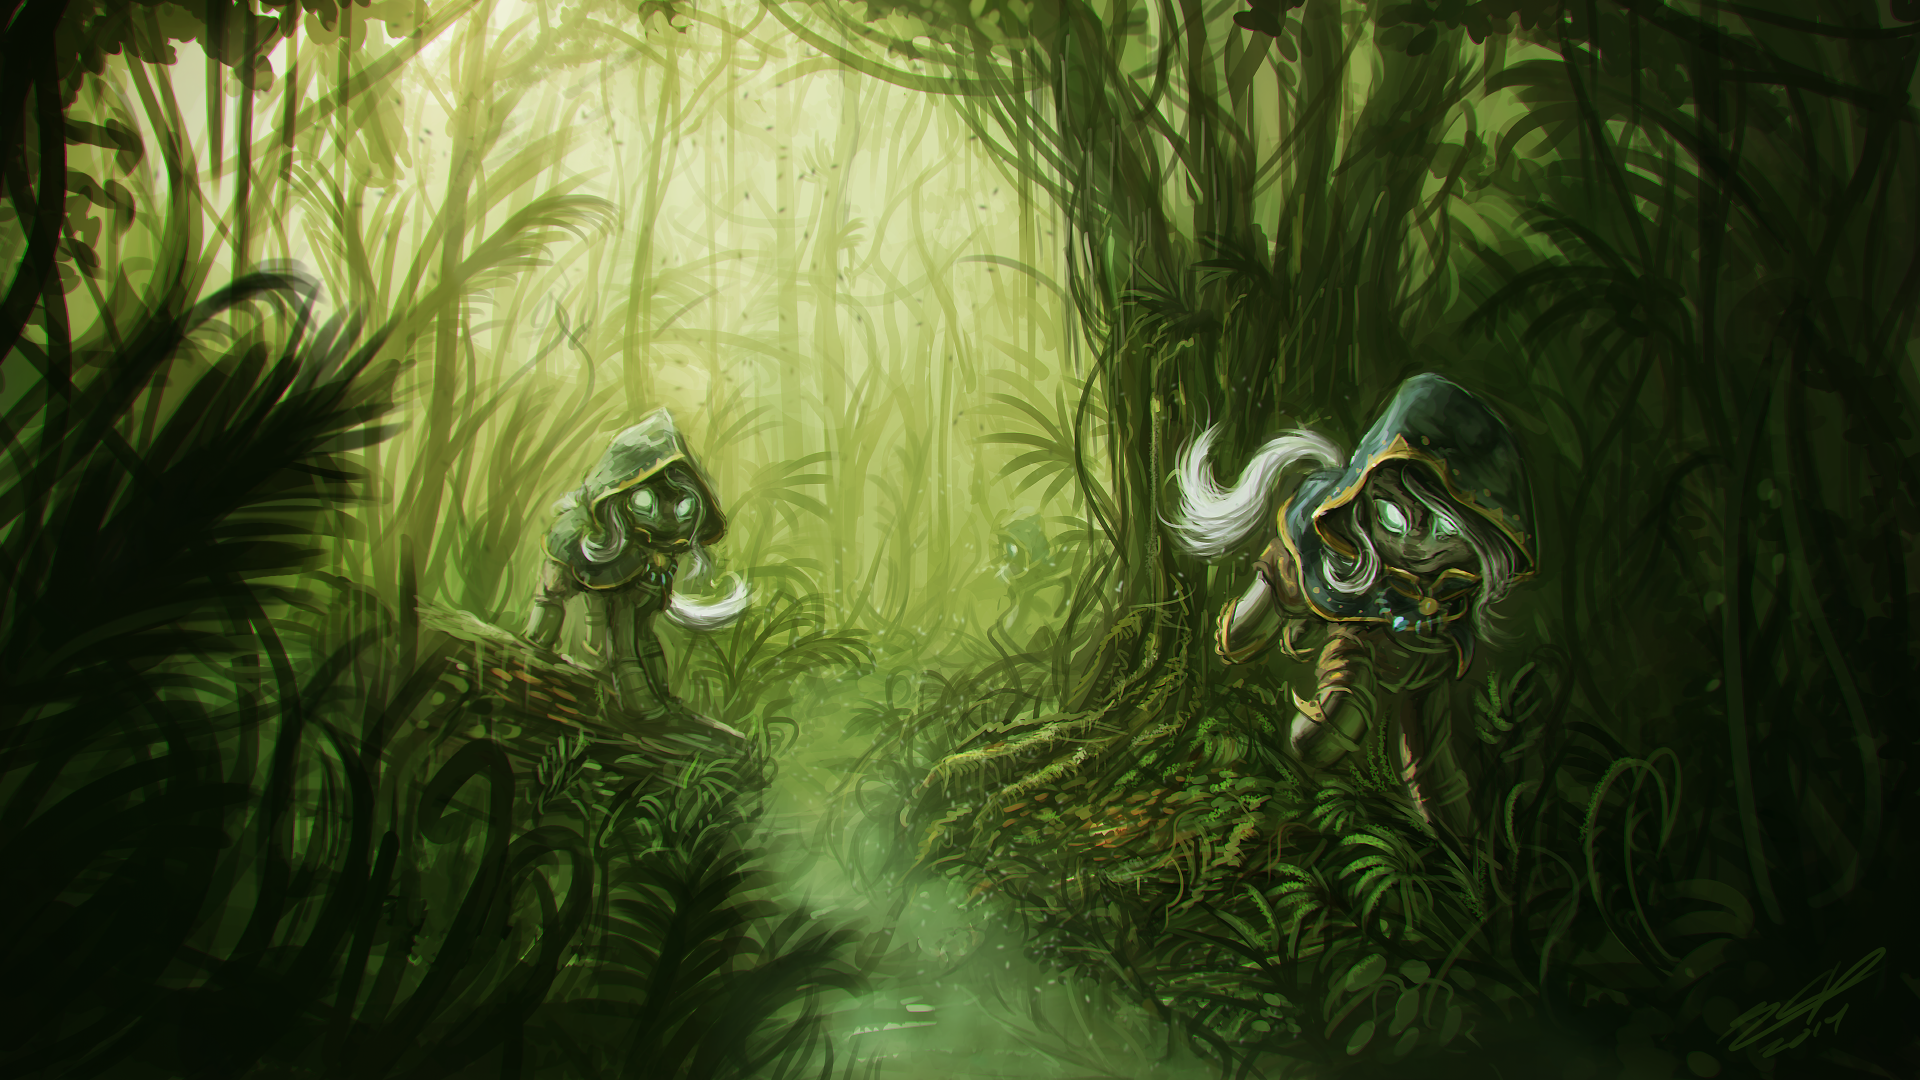 Sirens of Albicant by AssasinMonkey